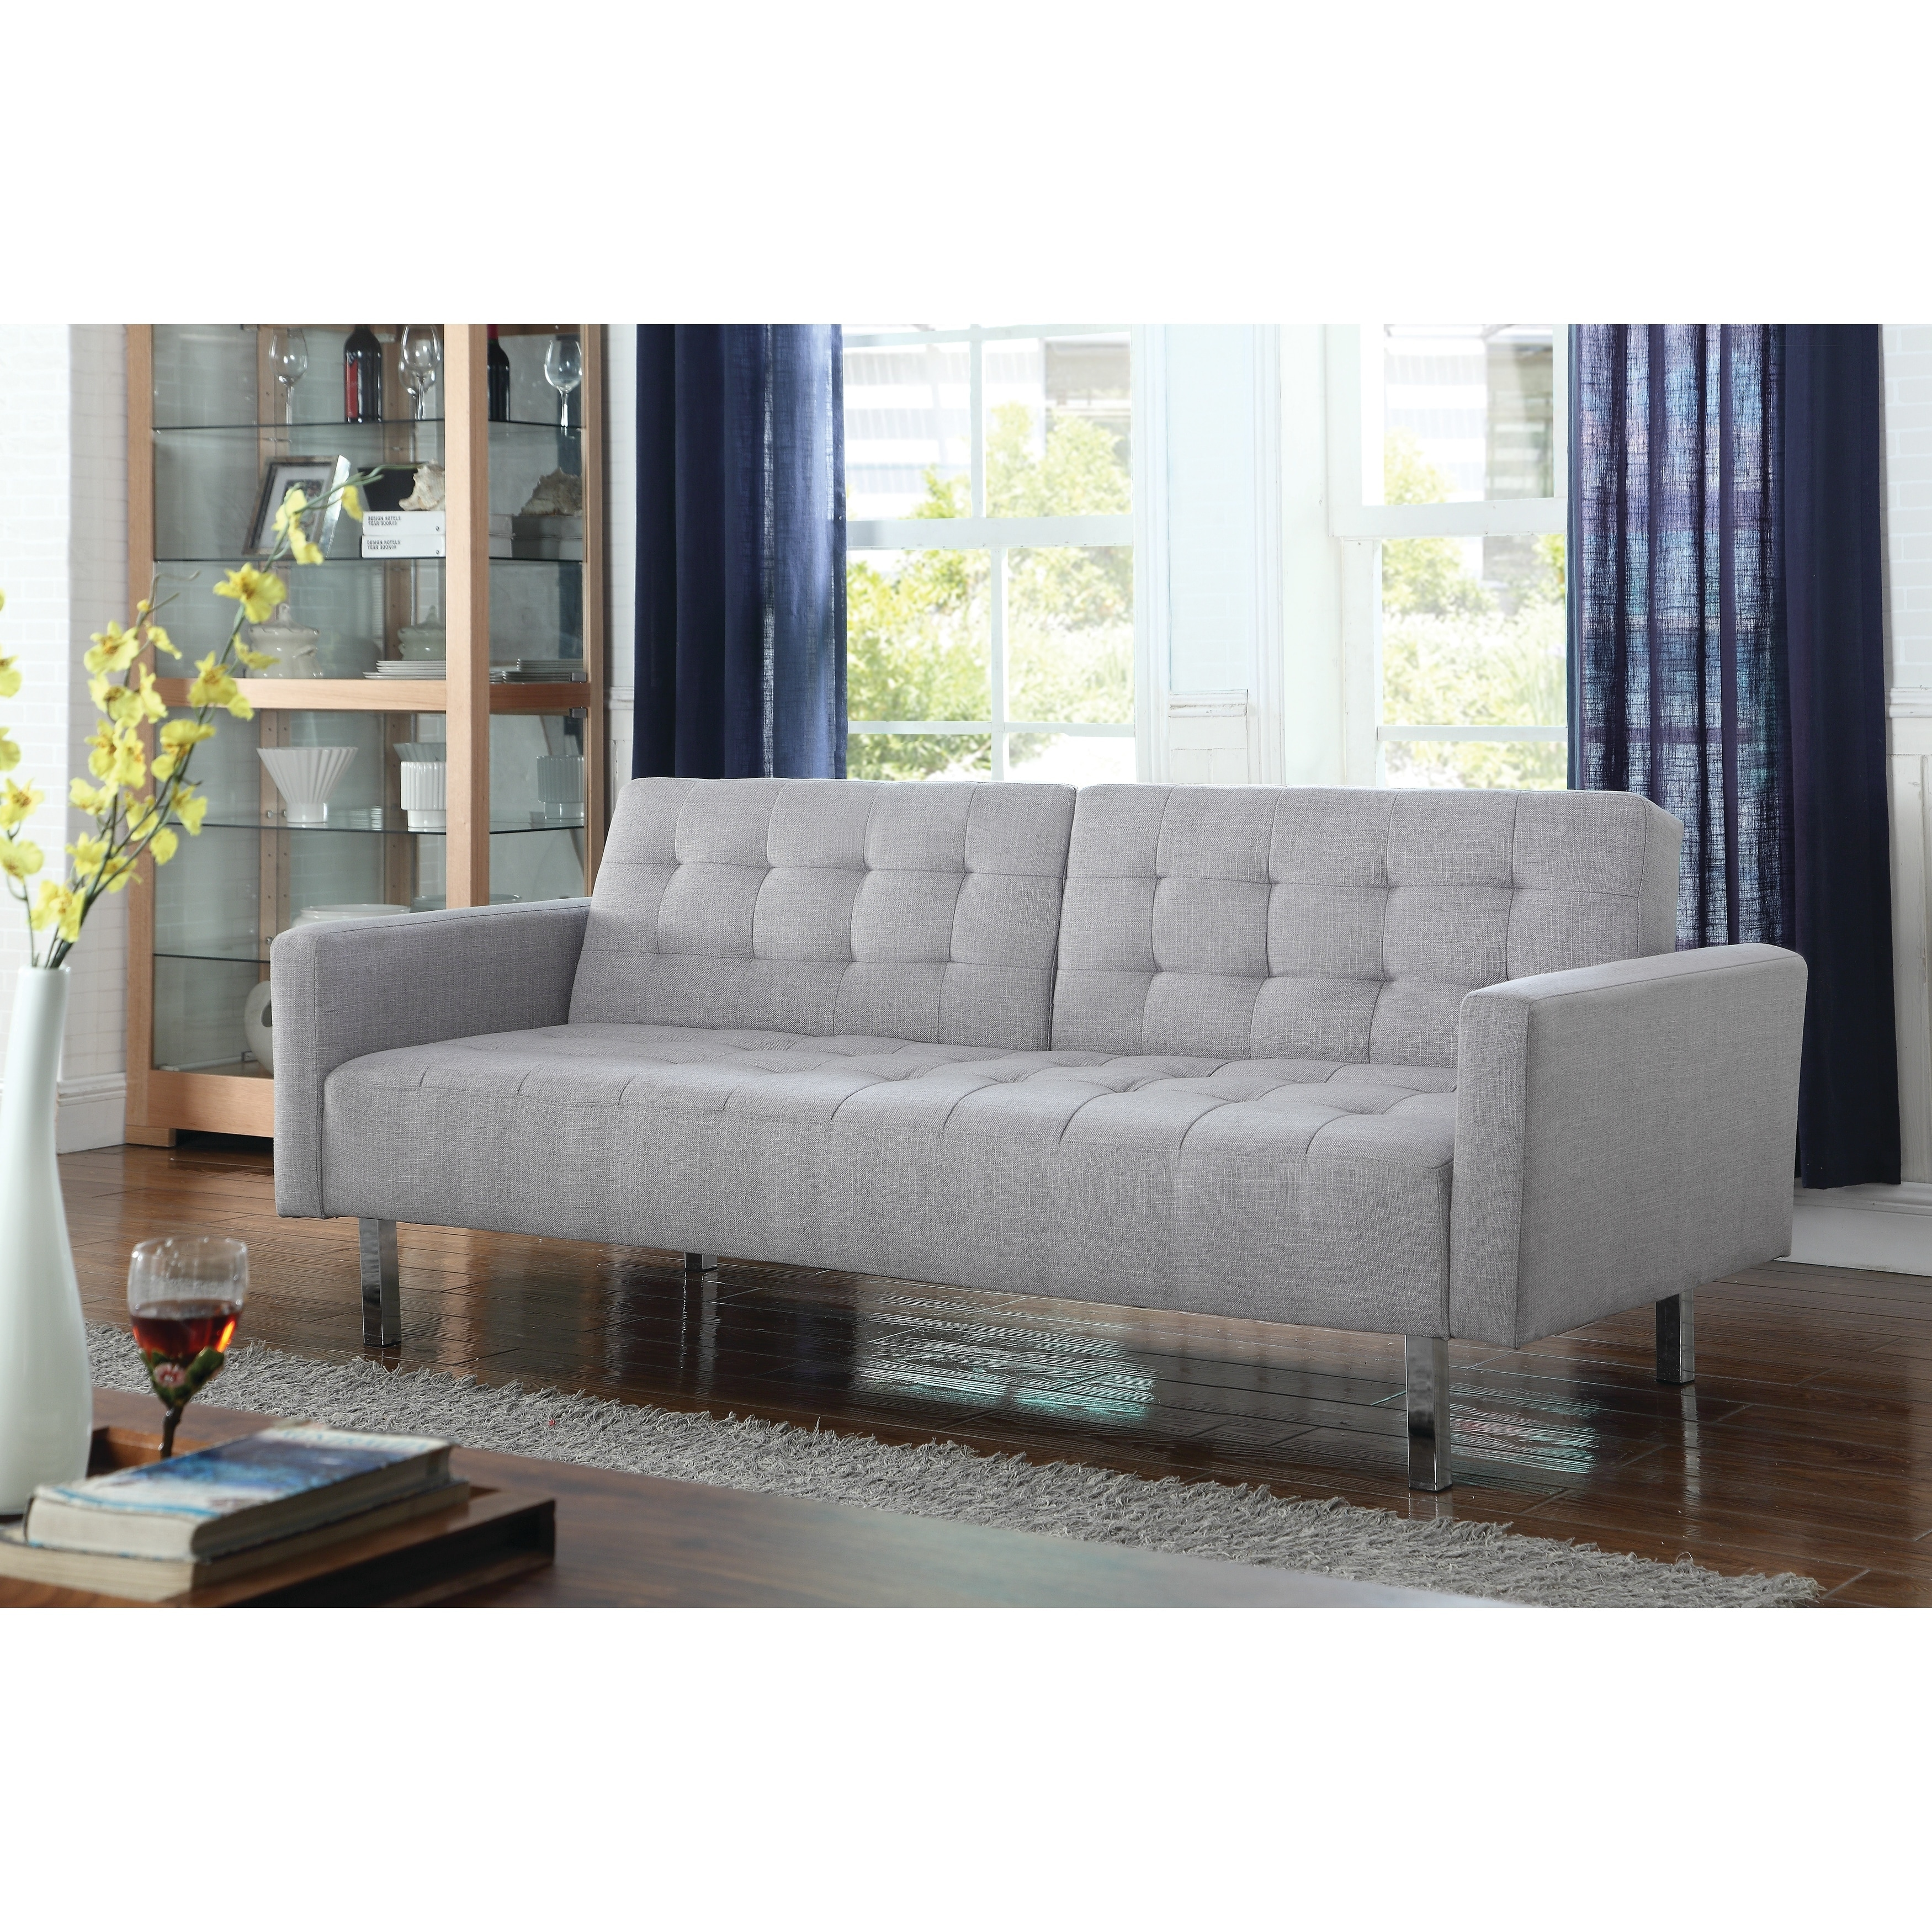 Transitional Light Grey Tufted Sofa Bed Free Shipping Today 22047303